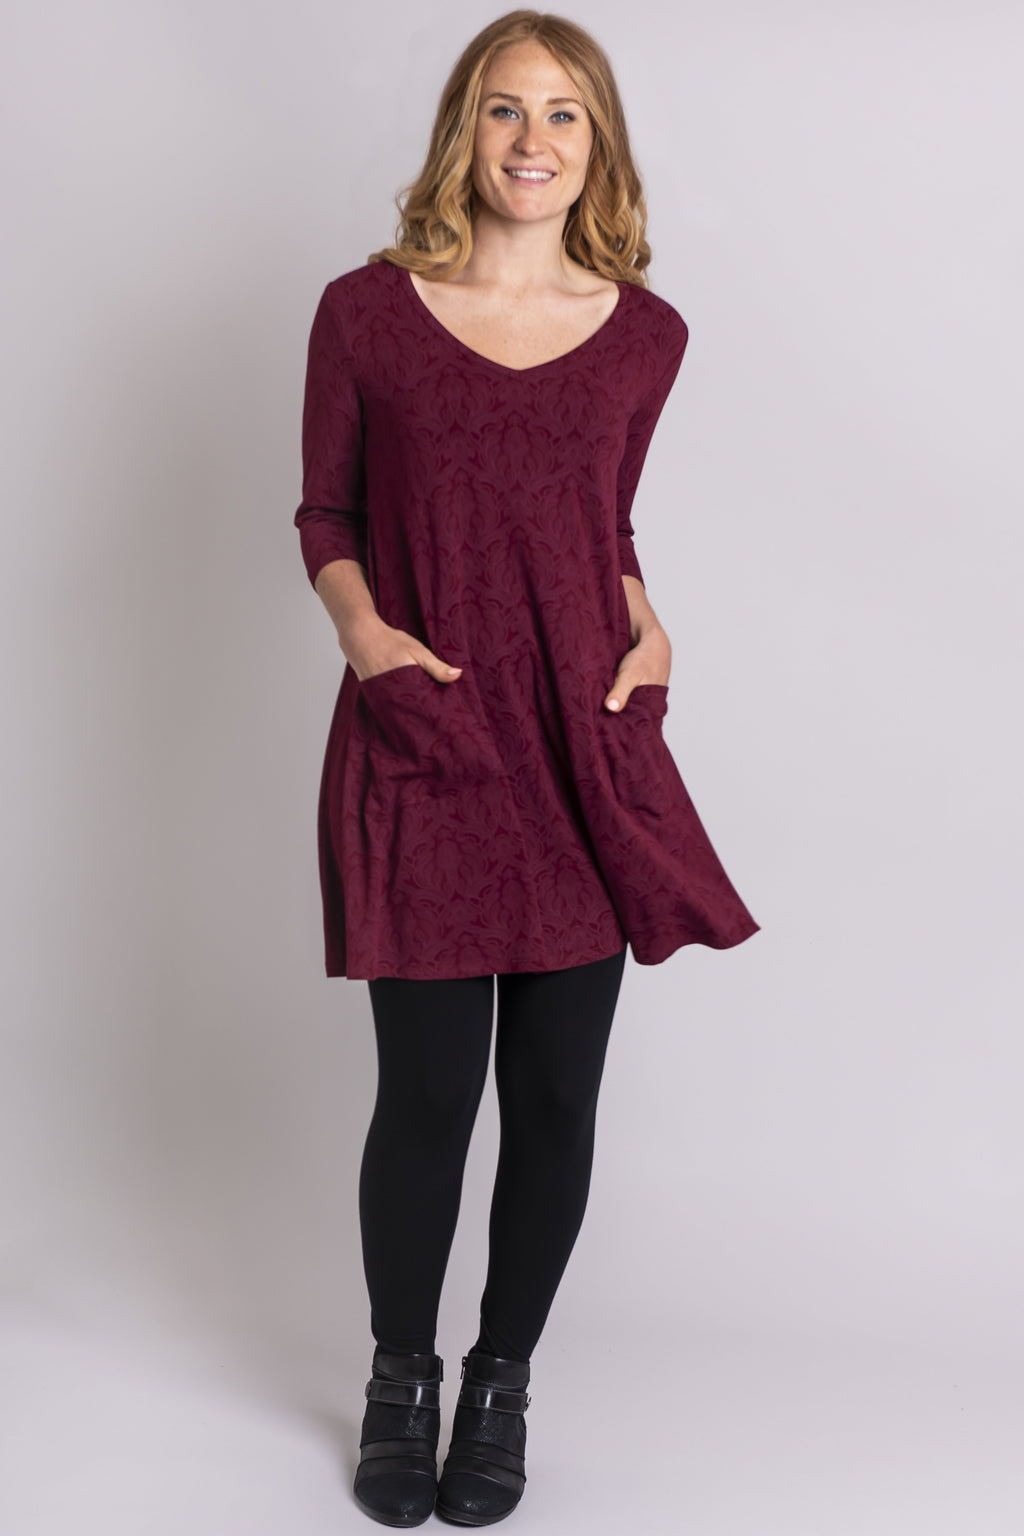 Veronica Tunic, Bordeaux Lovers, Bamboo - Blue Sky Clothing Co